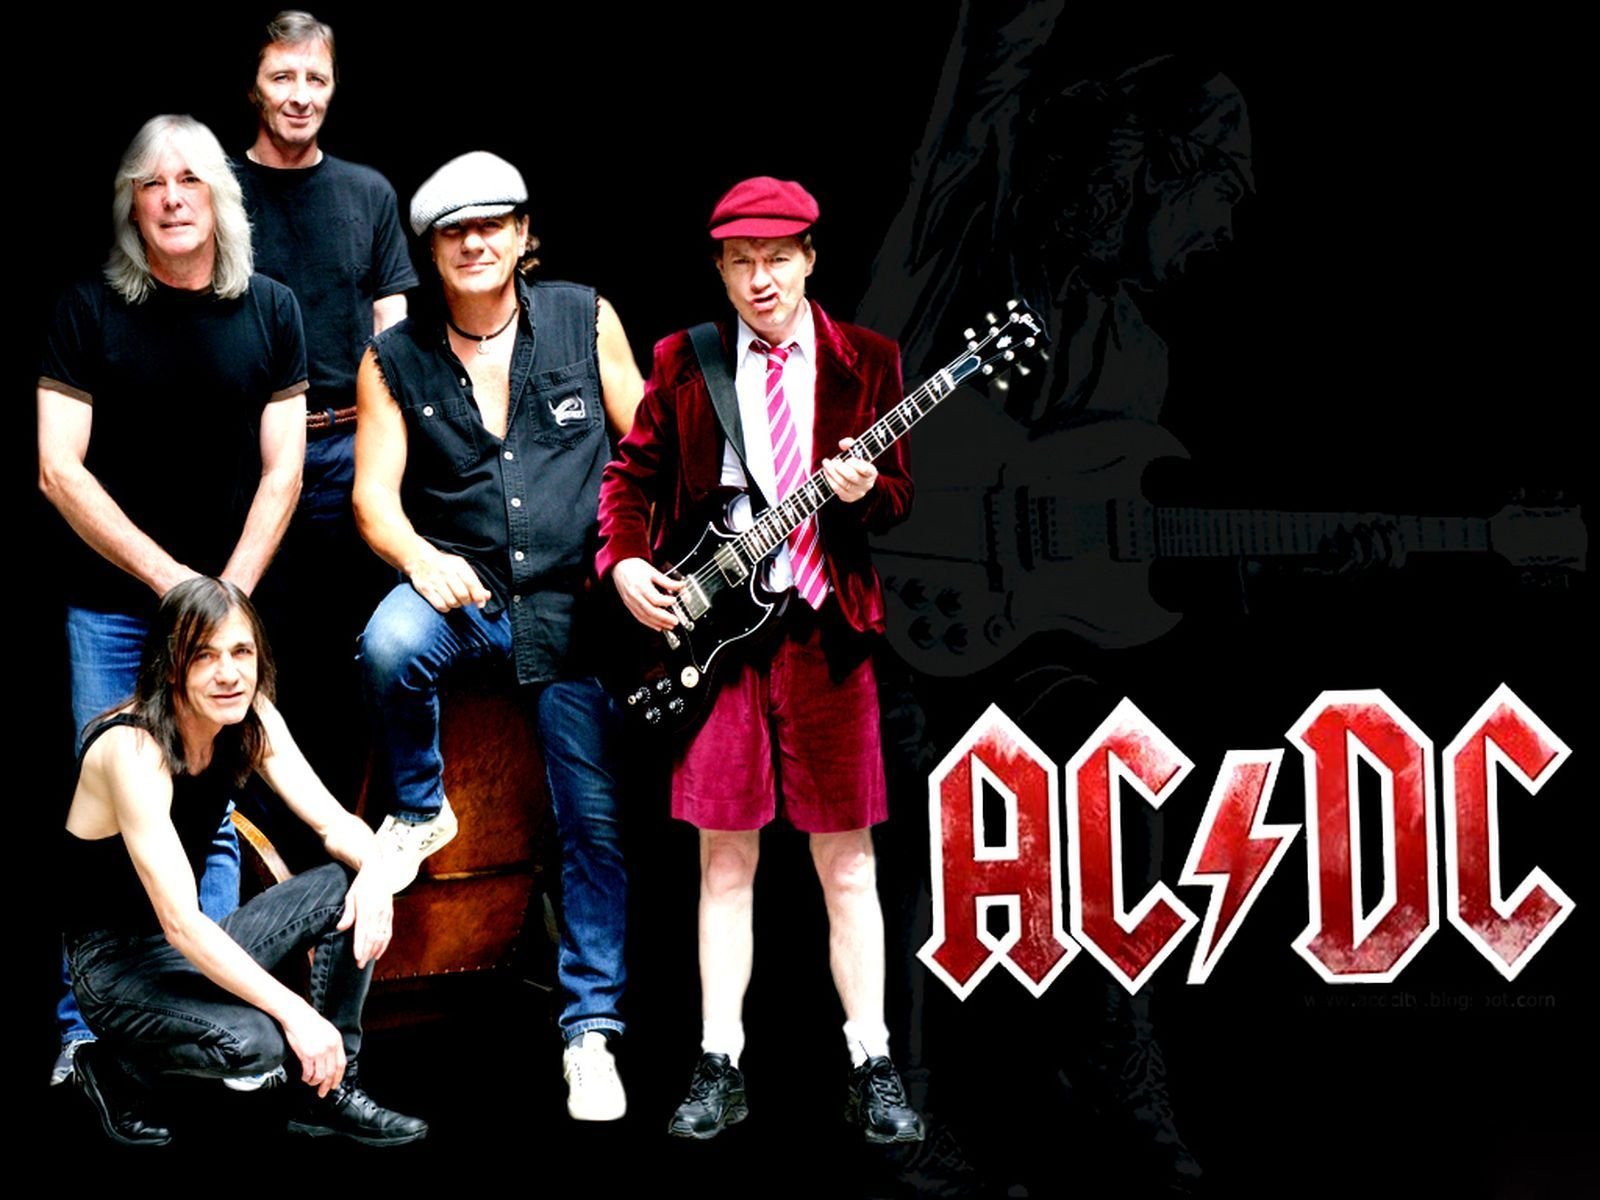 Cool Wallpaper Music Musical - later-years-ac-dc-wallpaper  You Should Have_51671.jpg